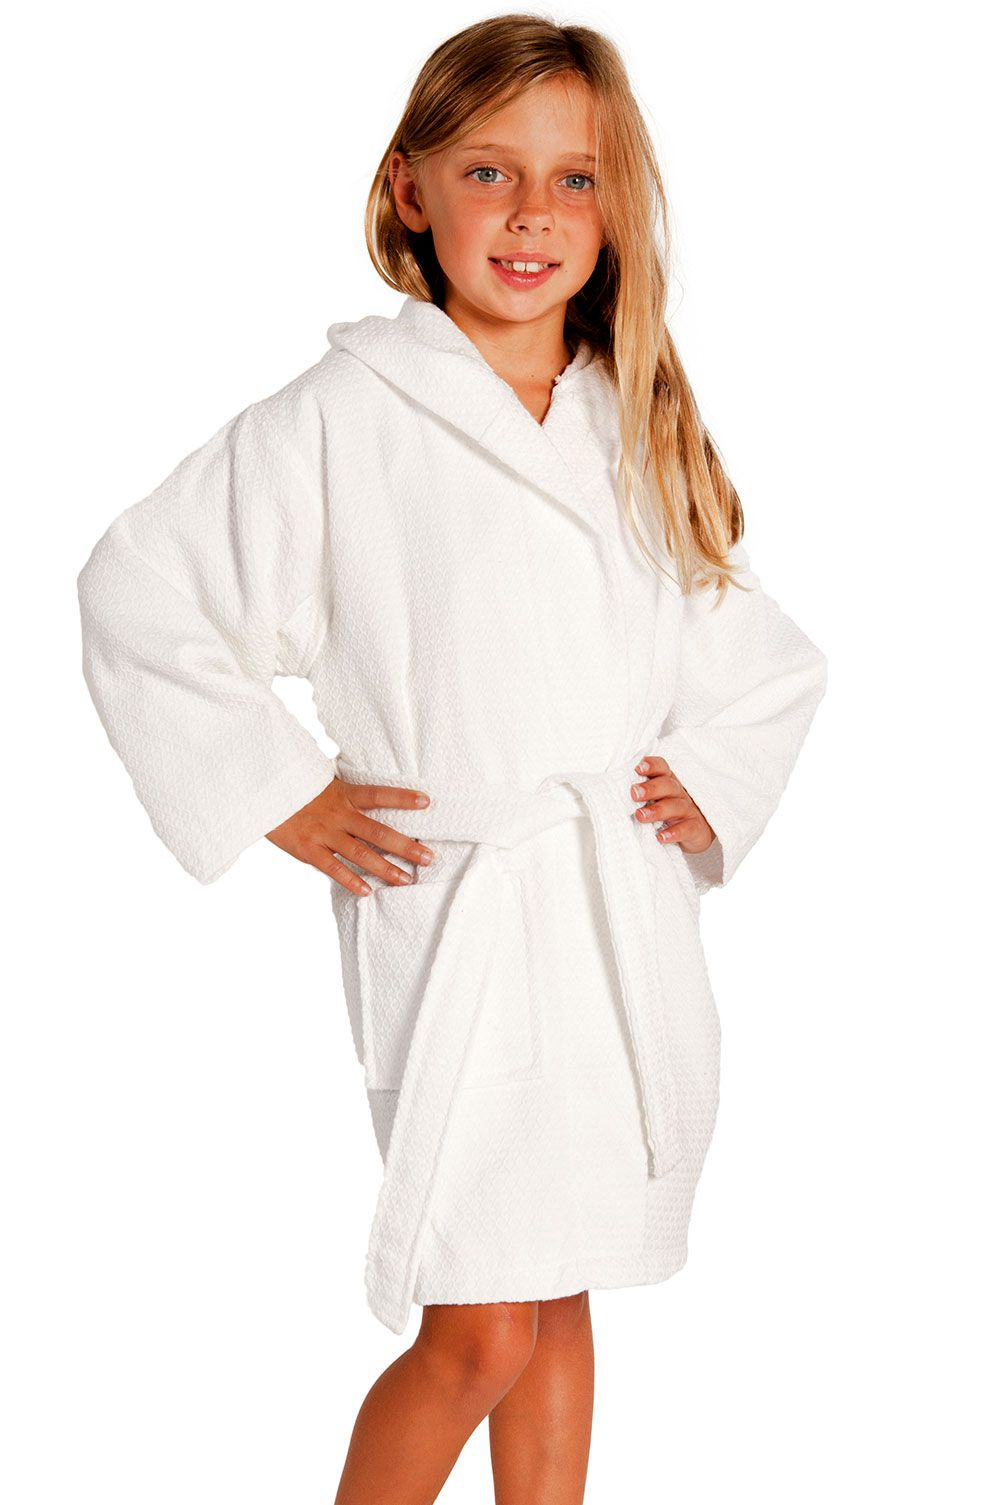 Kids Bathrobes    Kid s Hooded Waffle 100% Cotton Bathrobe - Wholesale  bathrobes dff7e37df